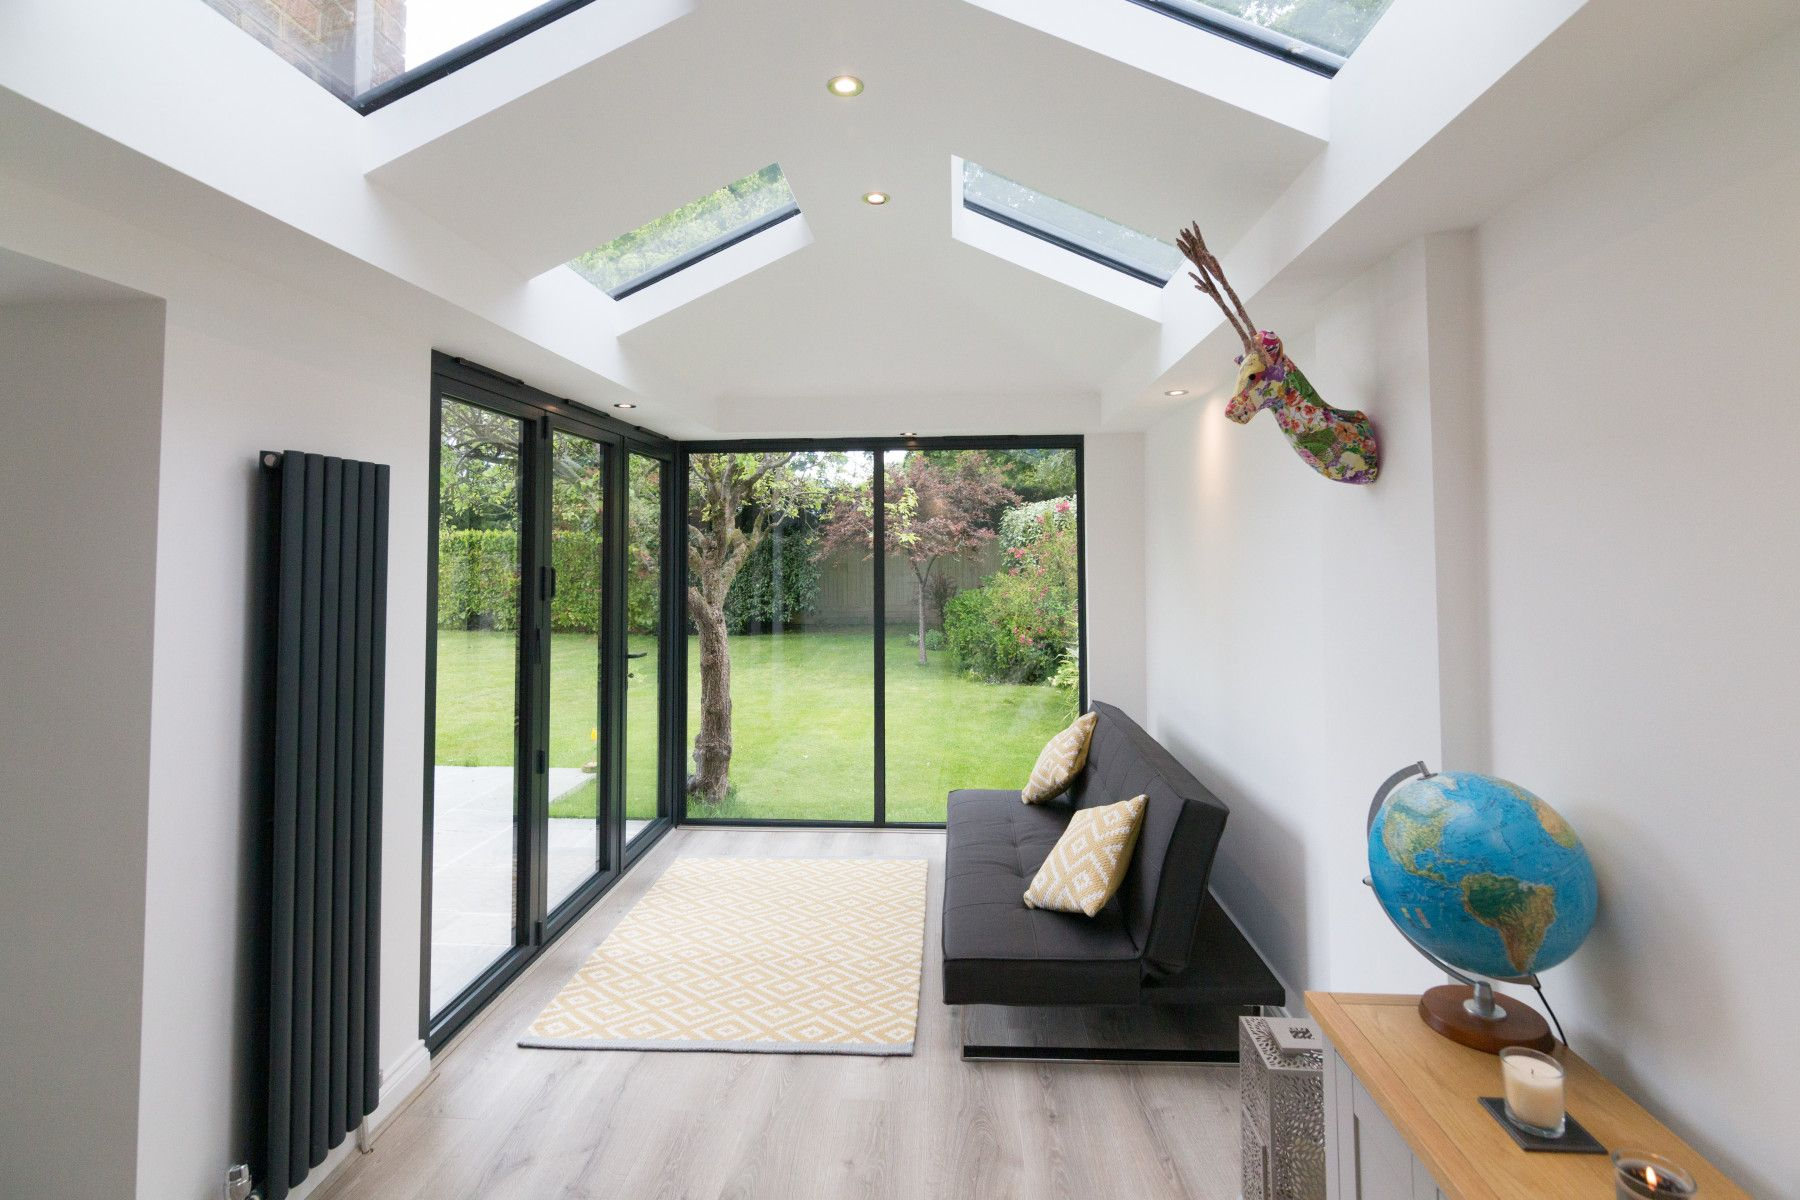 Replacement Conservatory Roof Prices Conservatory Roof Conversion In 2020 Conservatory Roof Replacement Conservatory Roof Conservatory Interiors